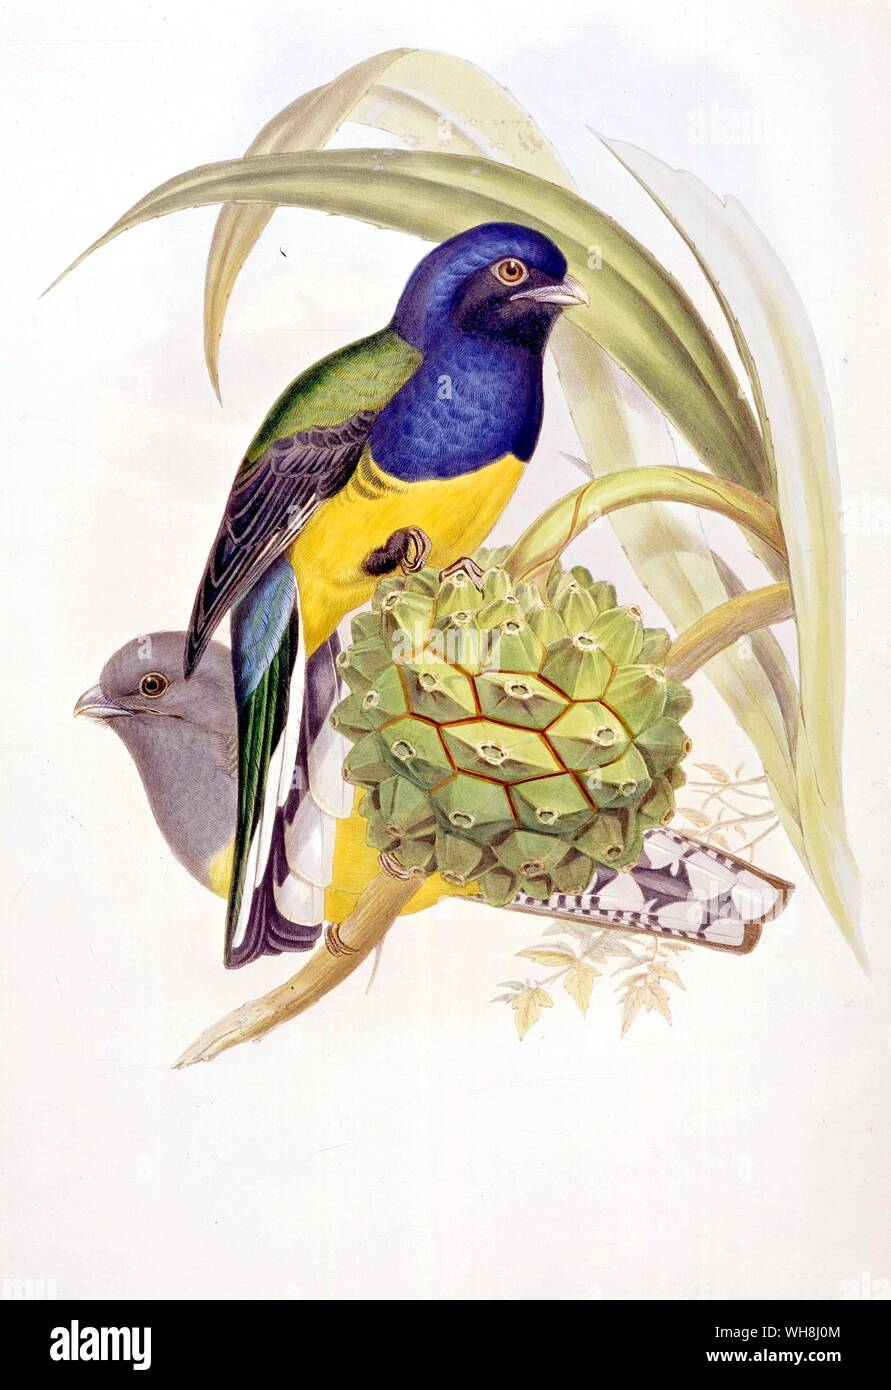 The black-winged Trogon (Trogon viridis), by John Gould  (1804 -1881) from Darwin and the Beagle by Alan Moorhead, page 71. Stock Photo